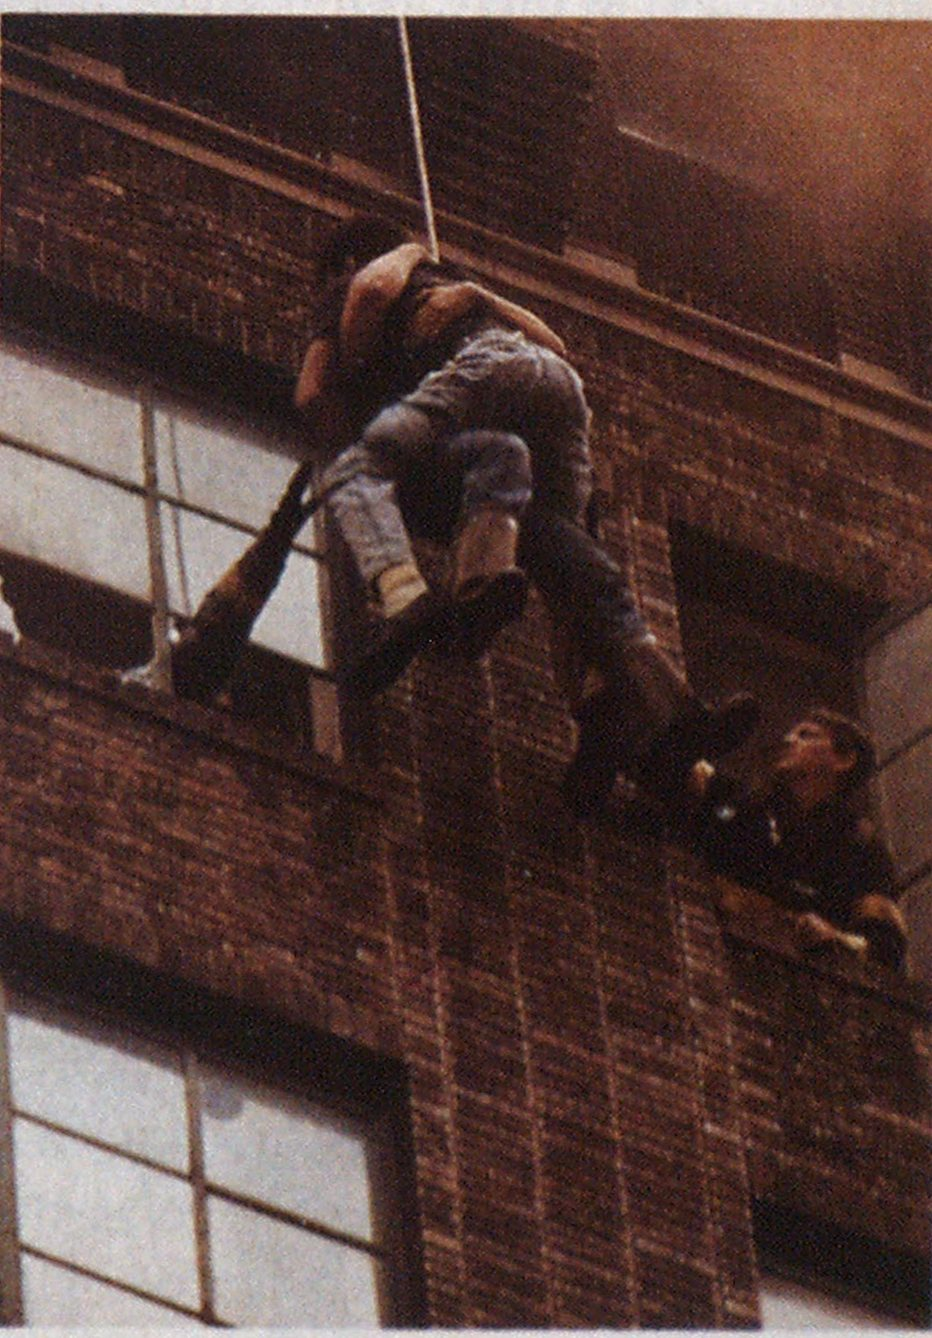 In a panic, the first victim jumped onto Firefighter Barr, placing an extreme impact load on the life-saving rope.